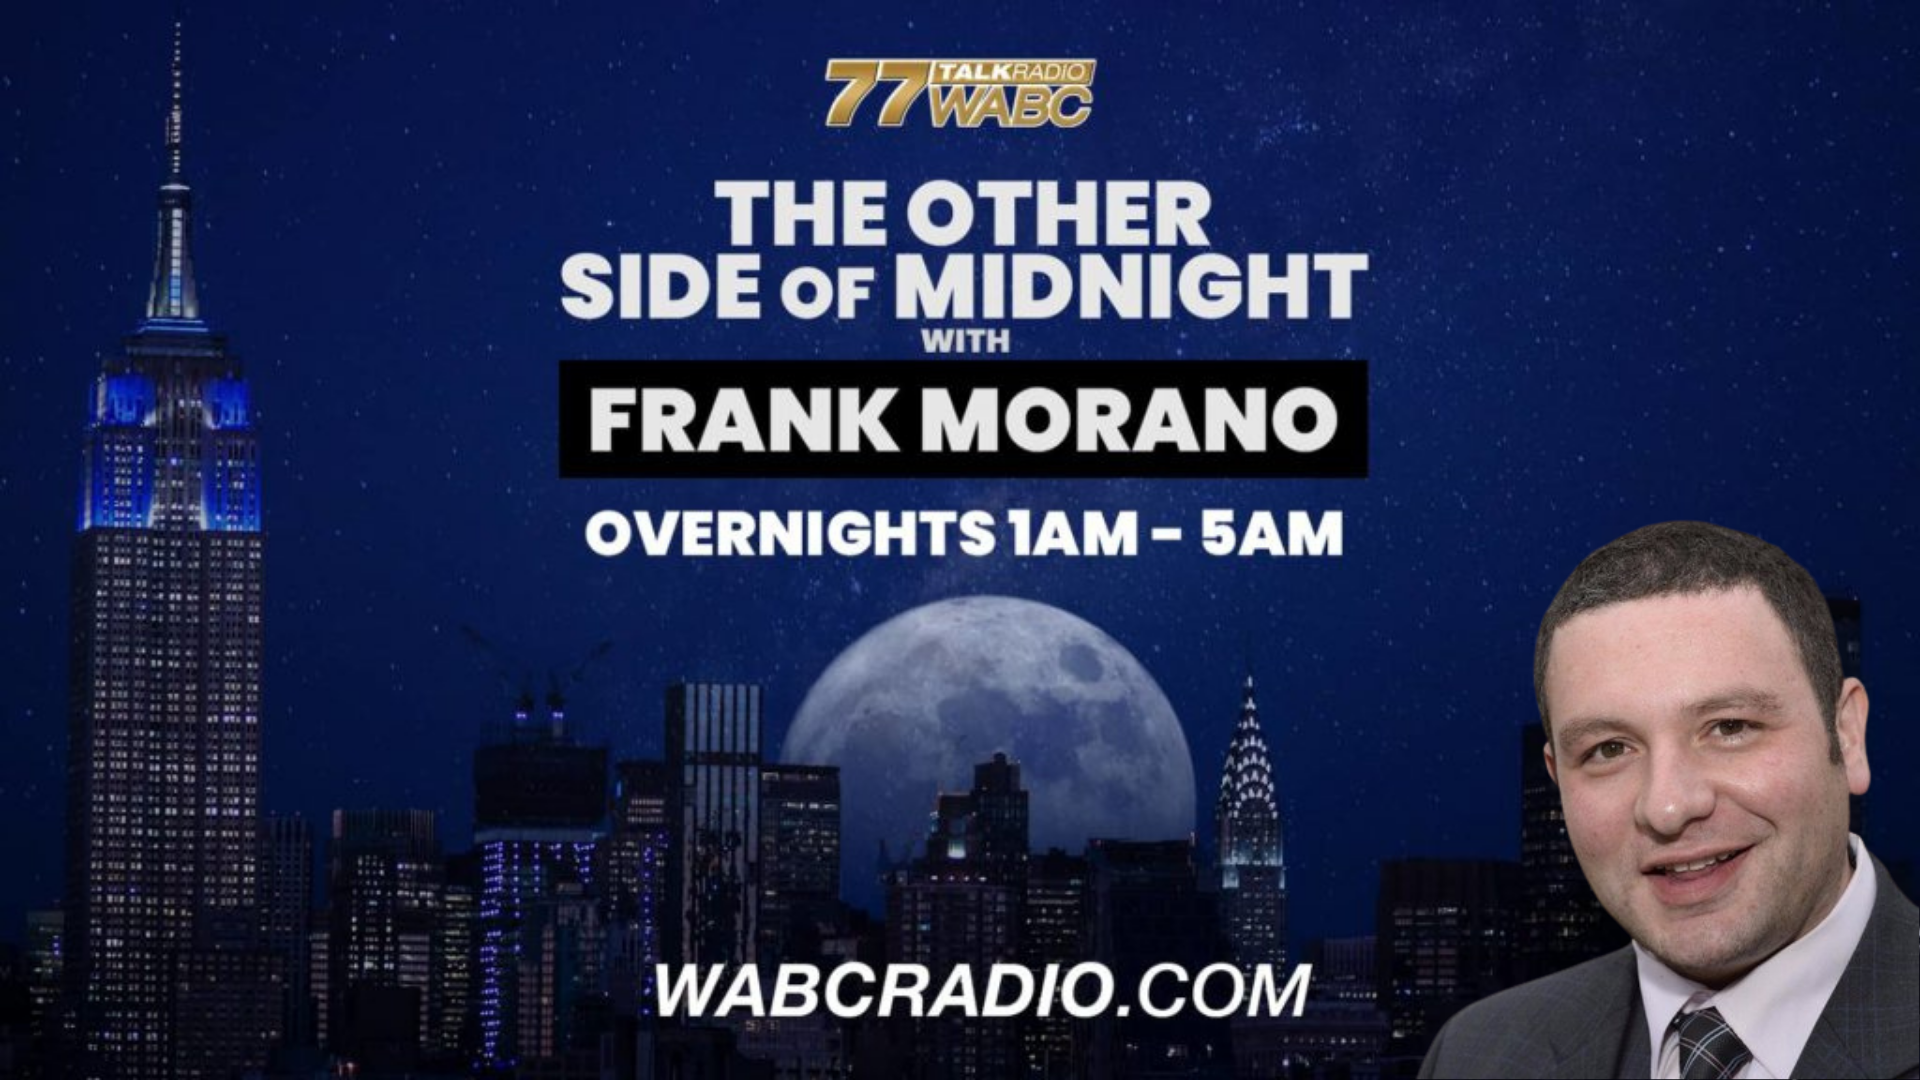 Thumbnail for Jeremy Scott Talks COVID Vaccine Skepticism, RFID's with Frank Morano on 77 WABC